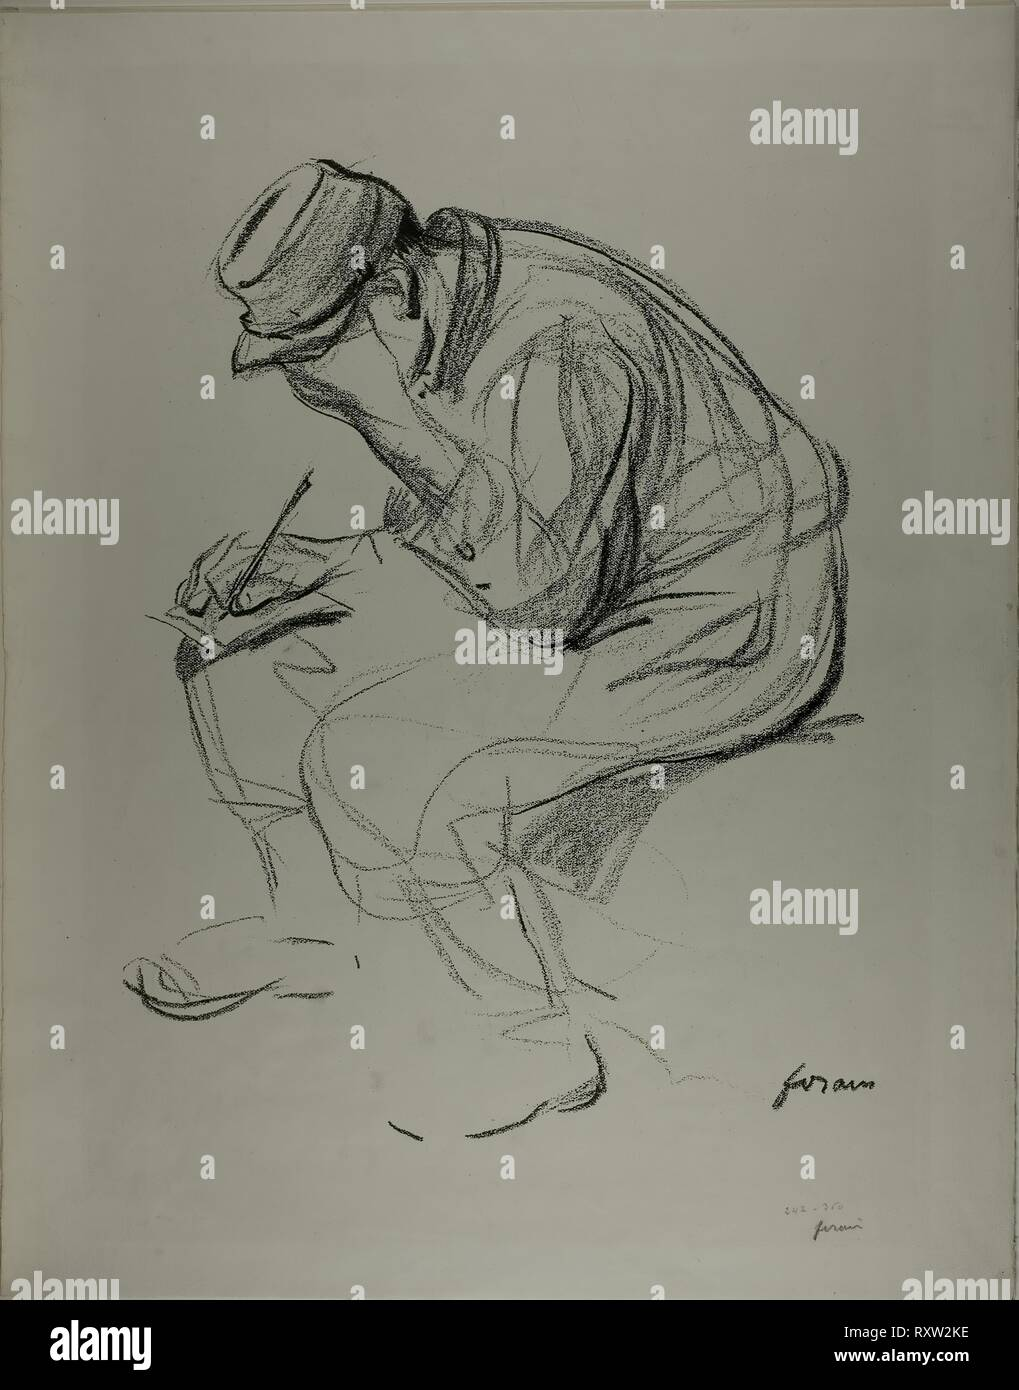 The Clothing of the Prisoner of war. Jean Louis Forain (French, 1852-1931); printed by Champenois, Paris. Date: 1910-1920. Dimensions: 705 × 556 mm. Lithograph on ivory wove paper. Origin: France. Museum: The Chicago Art Institute. - Stock Image